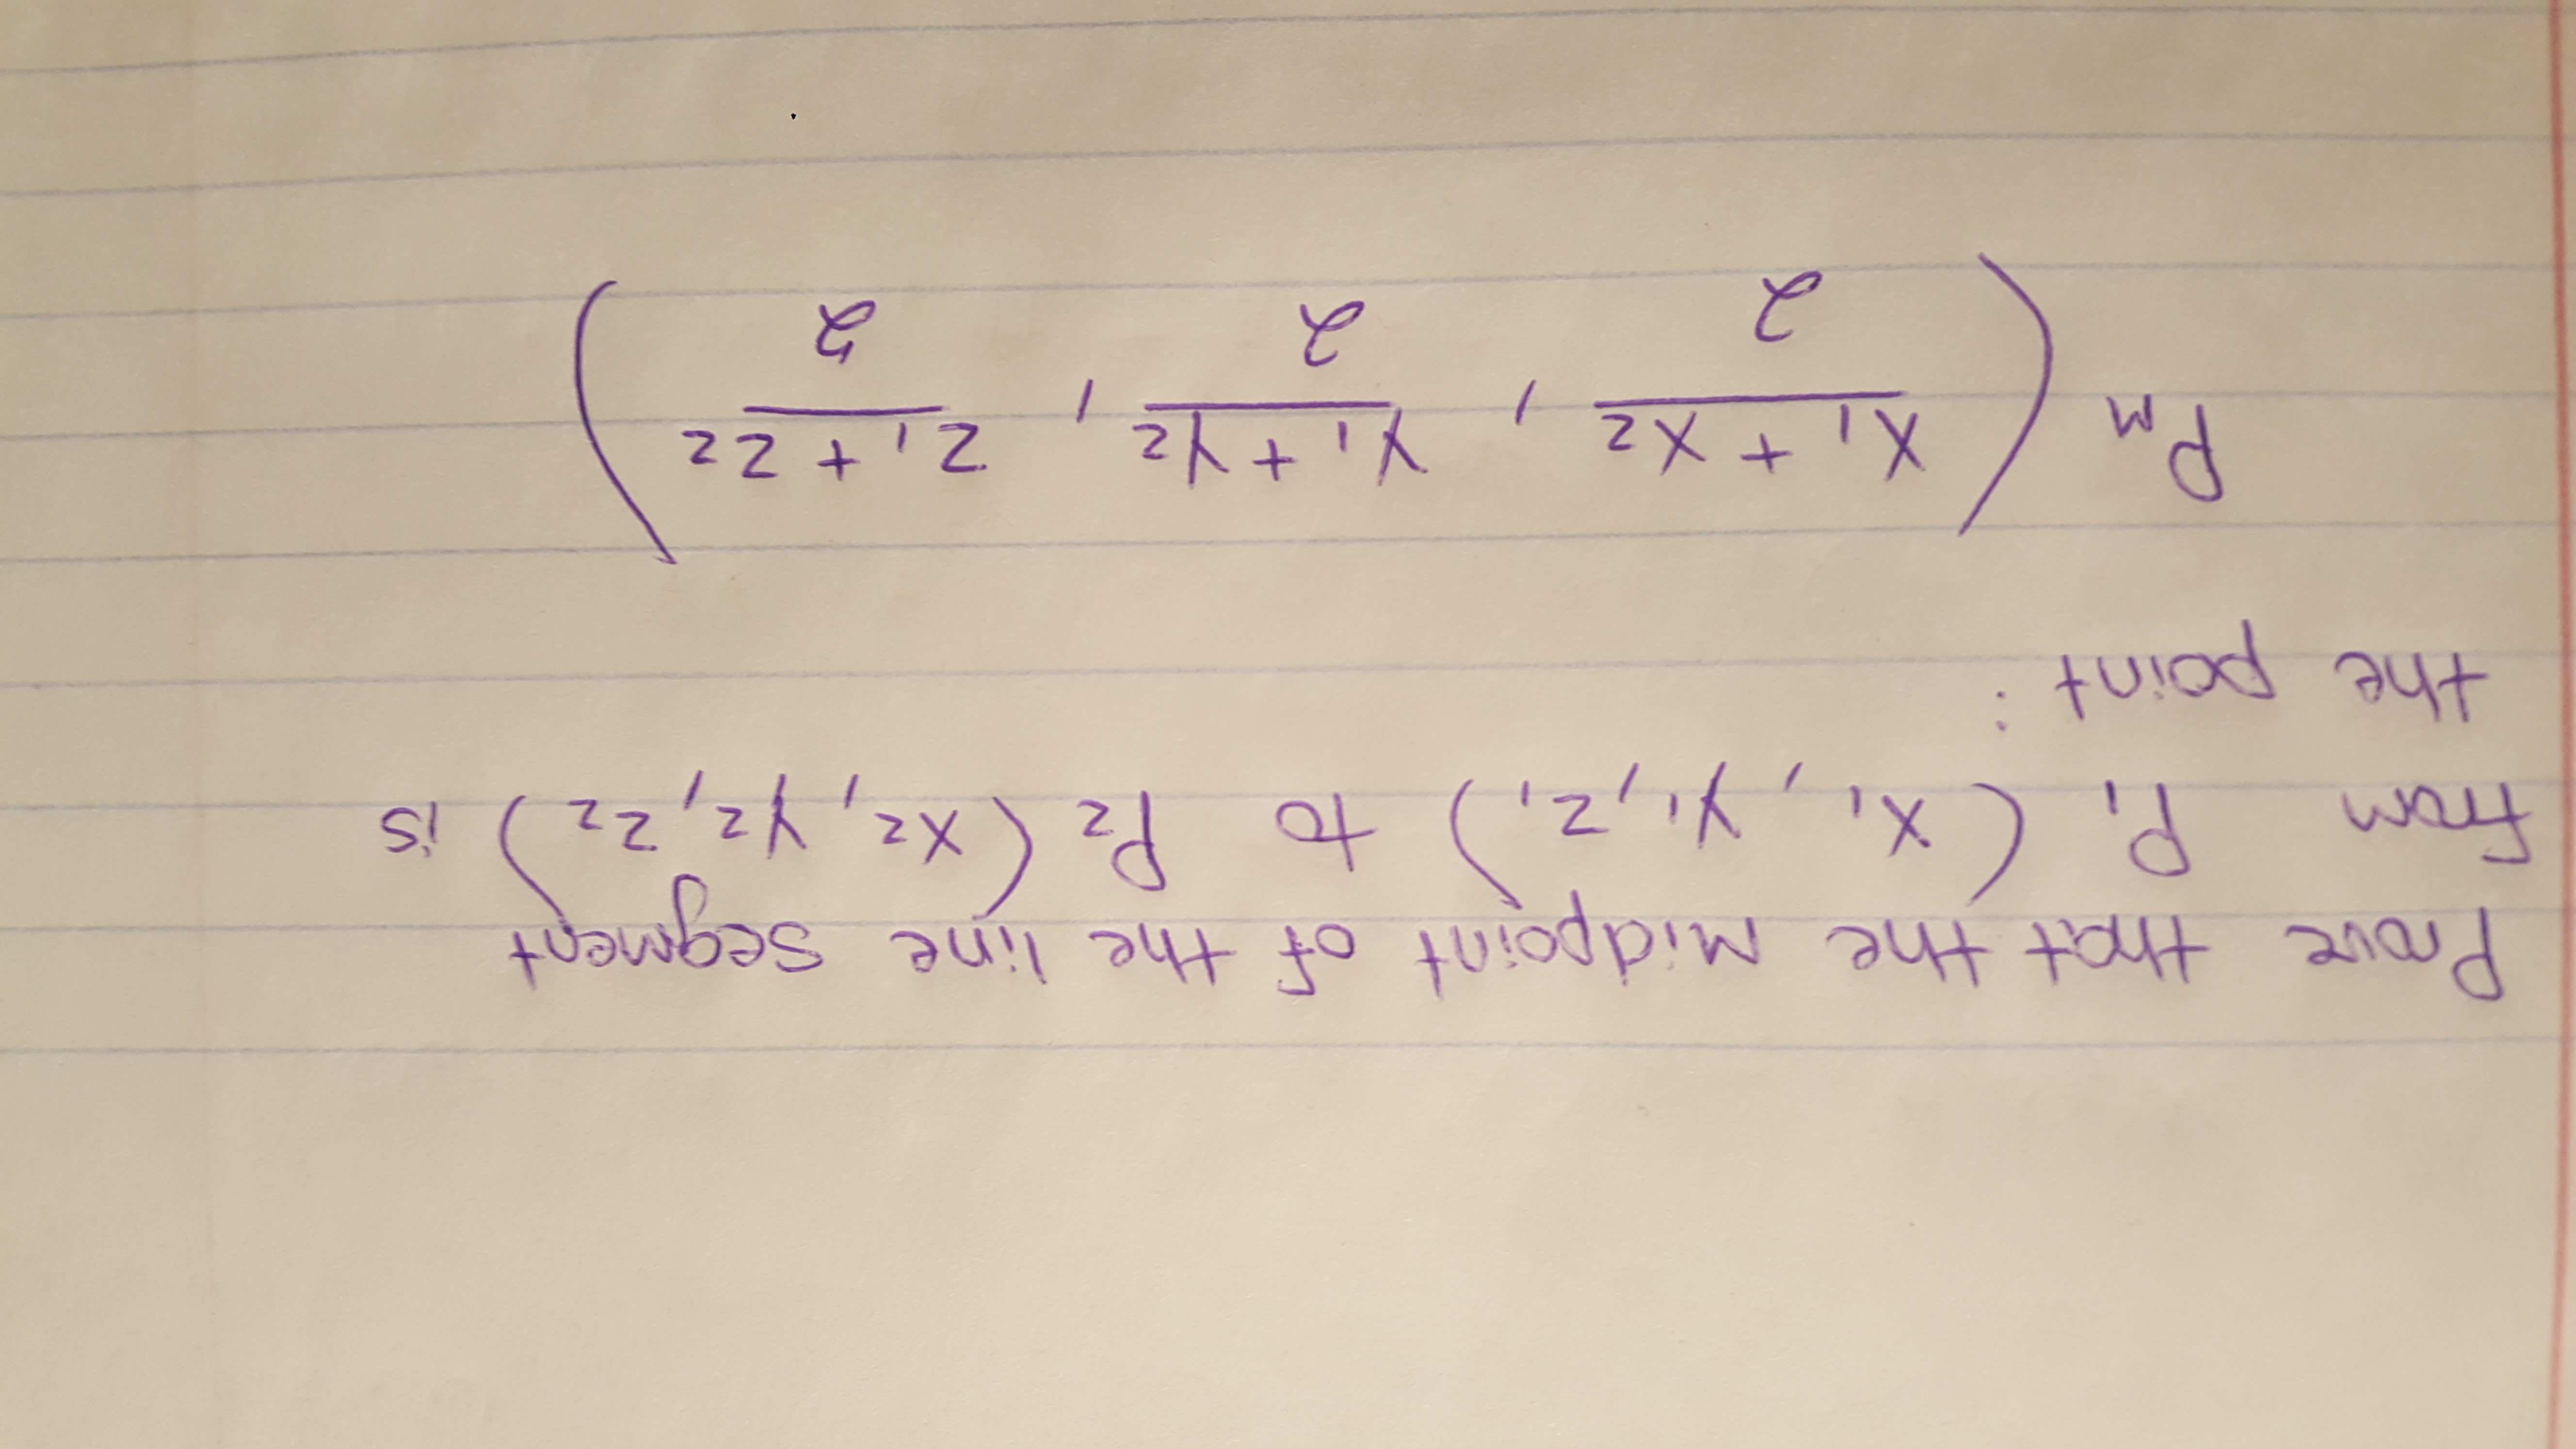 2人+人 2X PM the From Pi (x,,y,z,) to Pz (xz, Yz, Zz Prove that the Midpoint of the line Ssegment 12 was is 2102